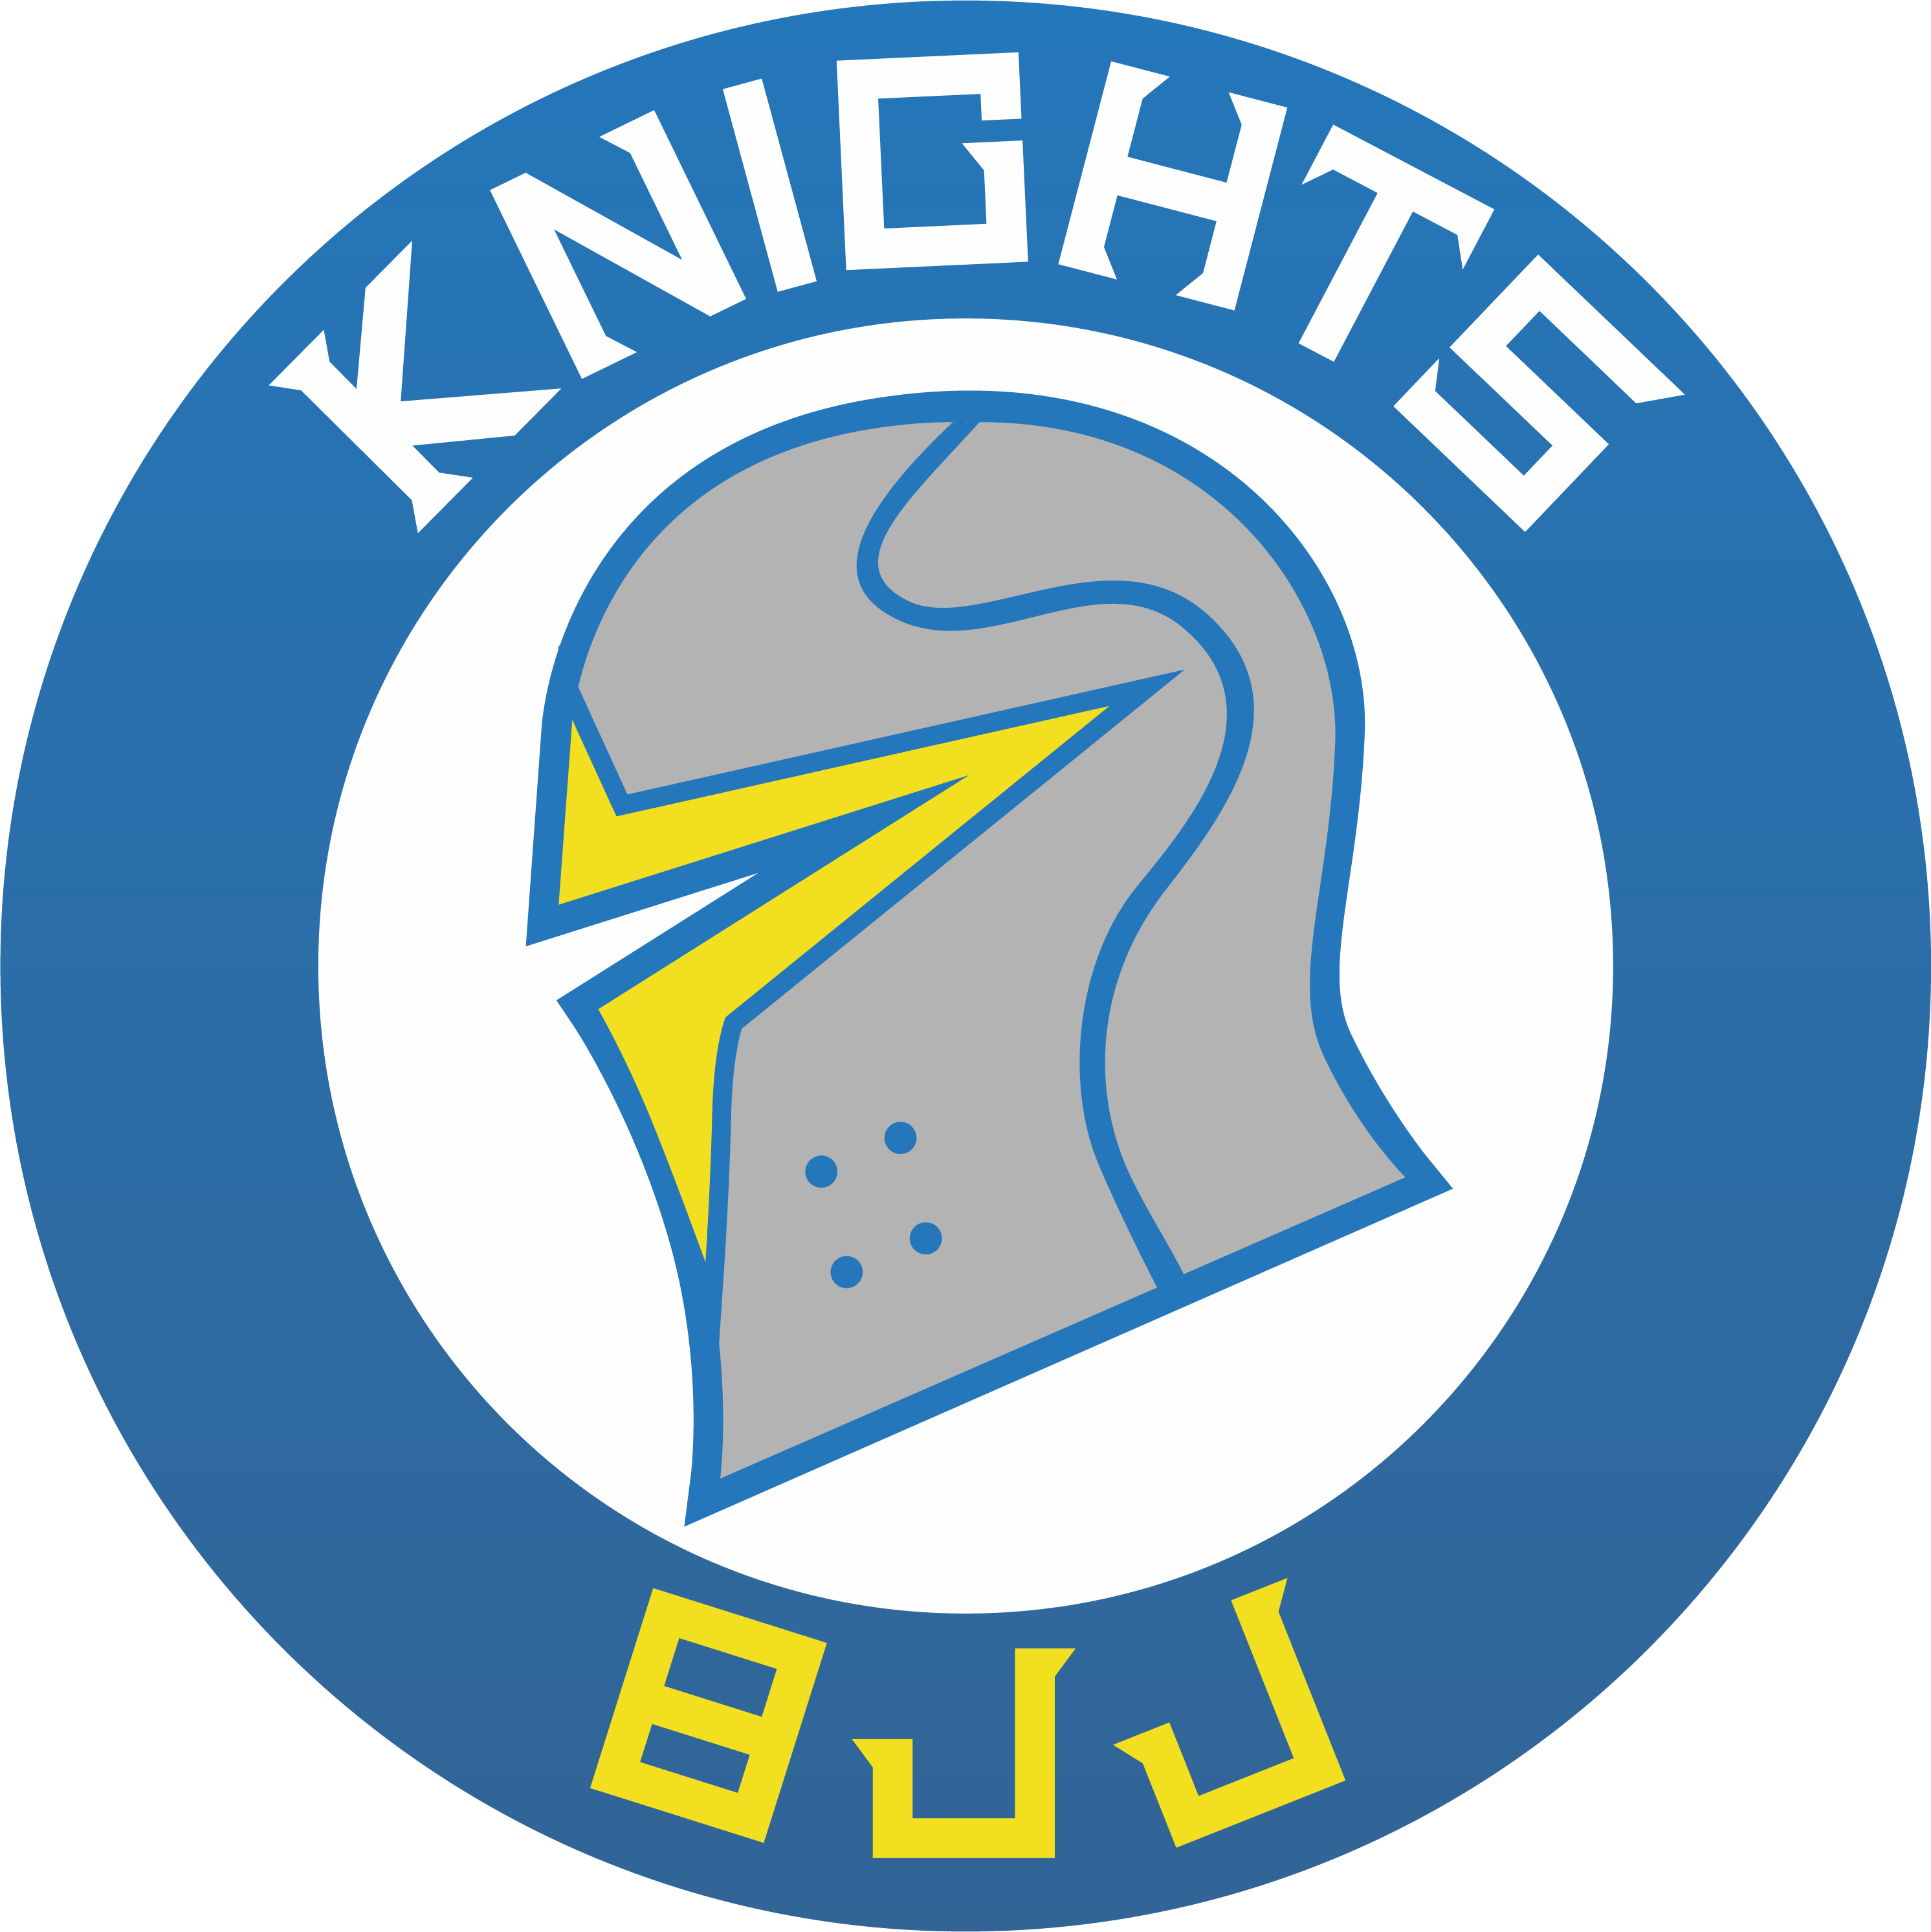 Knights BJJ Logo - A blue circle, with the words Around the top and bottom of it. The word Knights in white on top and BJJ in yellow on the bottom.  Inside the blue circle there is another white circle in between the words knights and bjj.  A side profile of a knights helmet colored grey is inside the white circle.